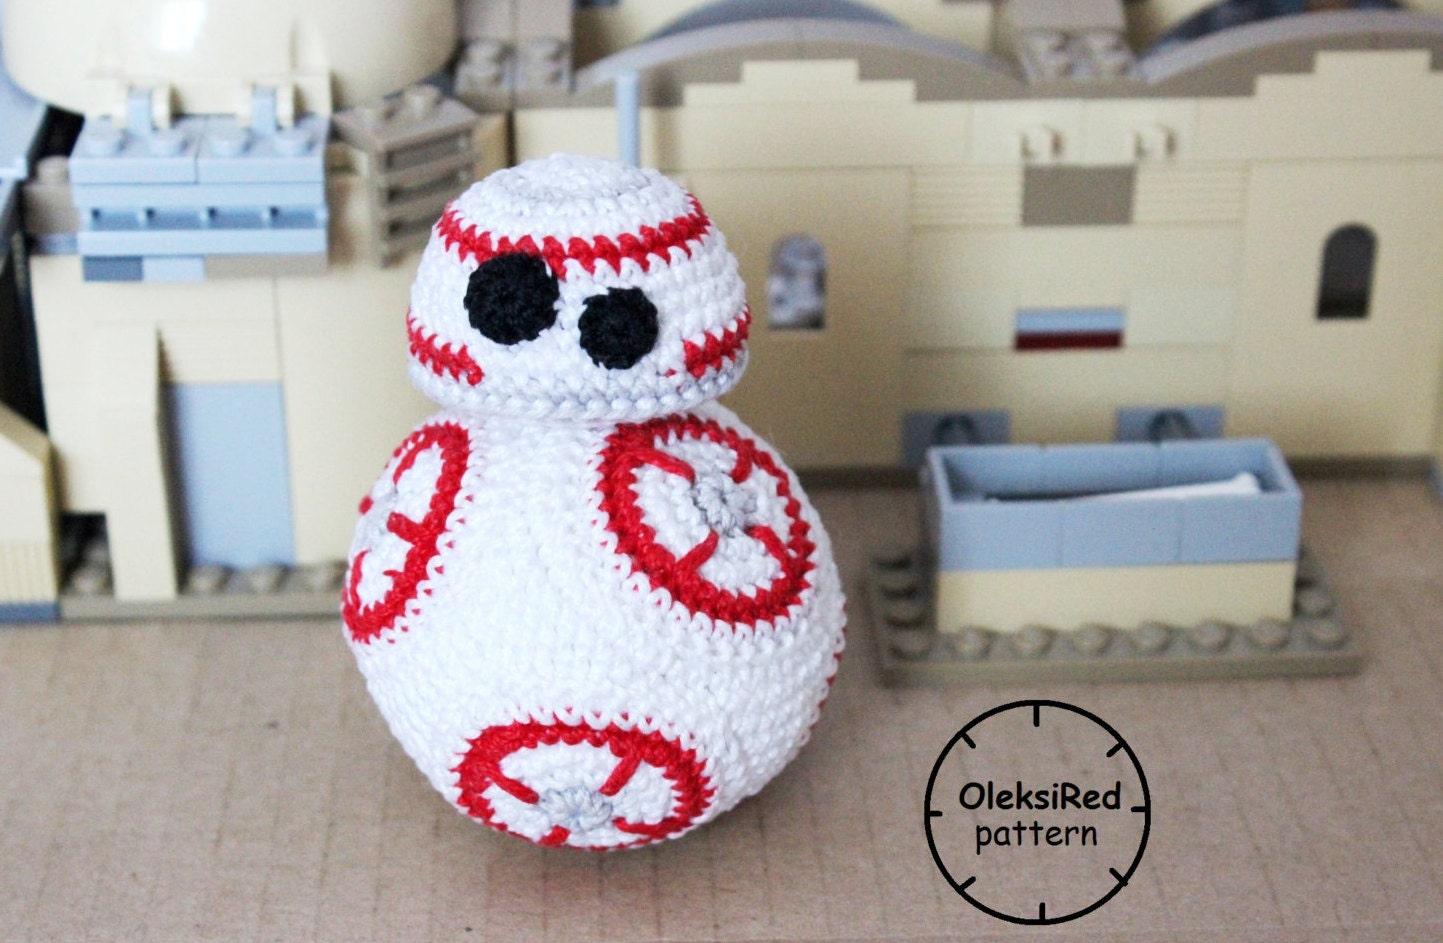 Star Wars CROCHET PATTERN - Droid Bb8 amigurumi pattern! from ...